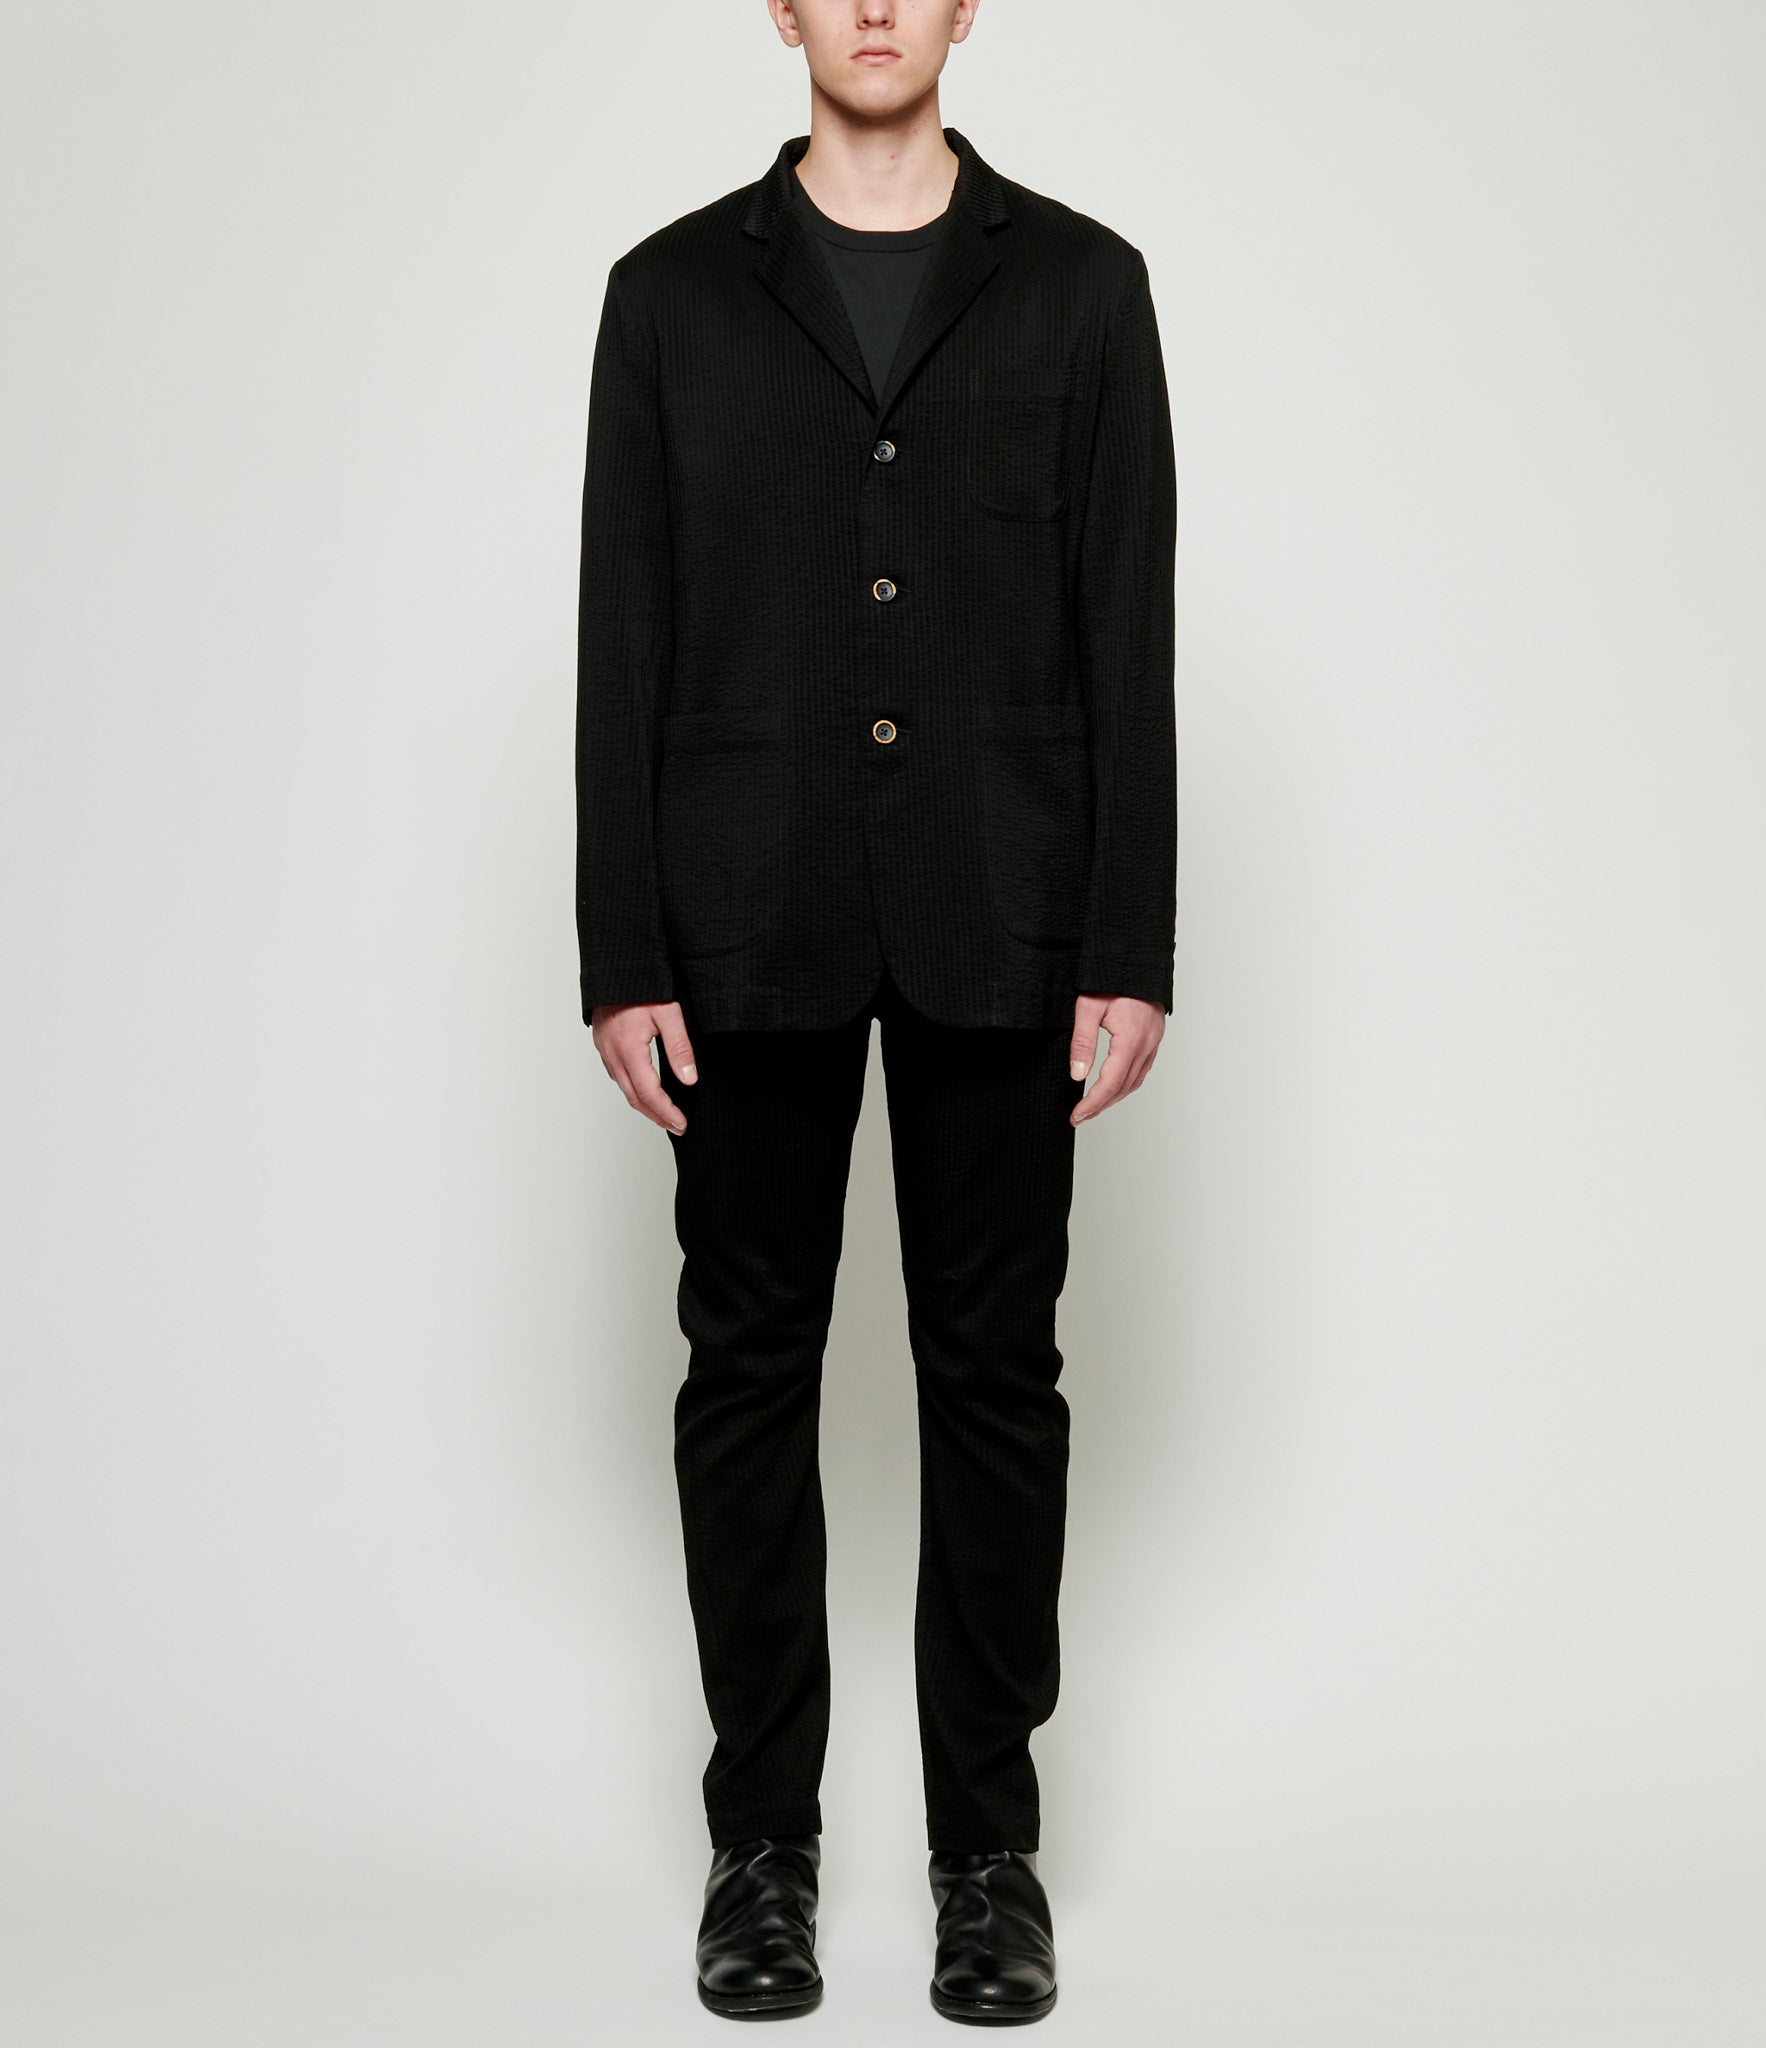 Uma Wang Black Jared Jacket